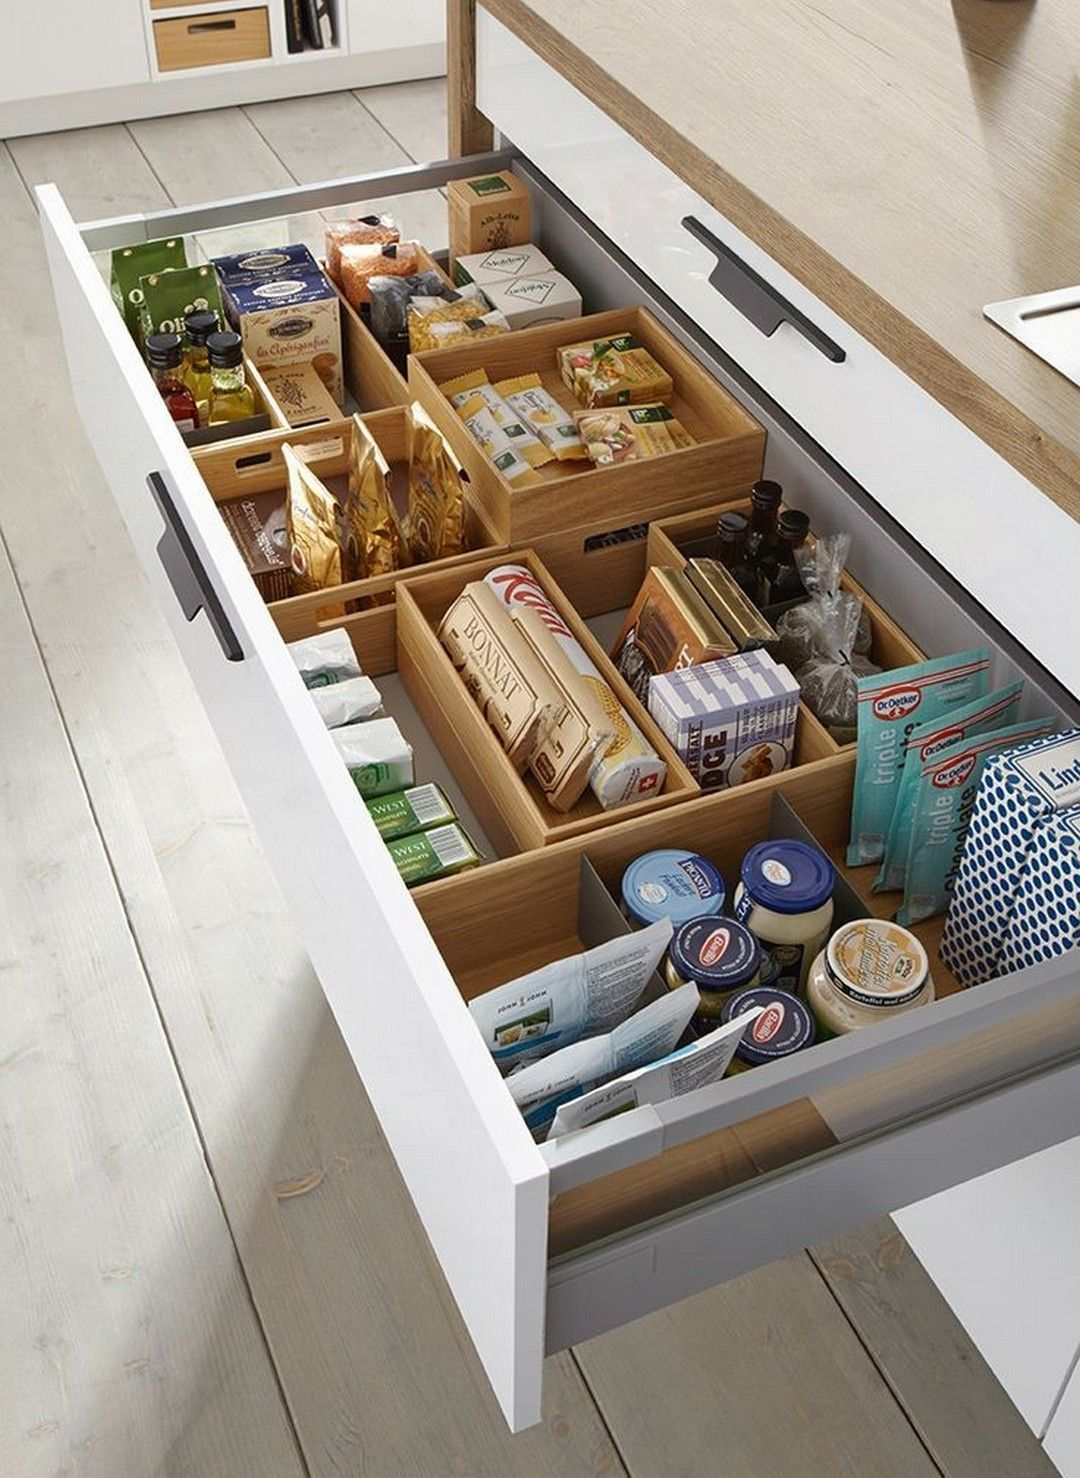 26 clever kitchen storage ideas and trends for 2019 on clever ideas for diy kitchen cabinet organization tips for organizers id=79513